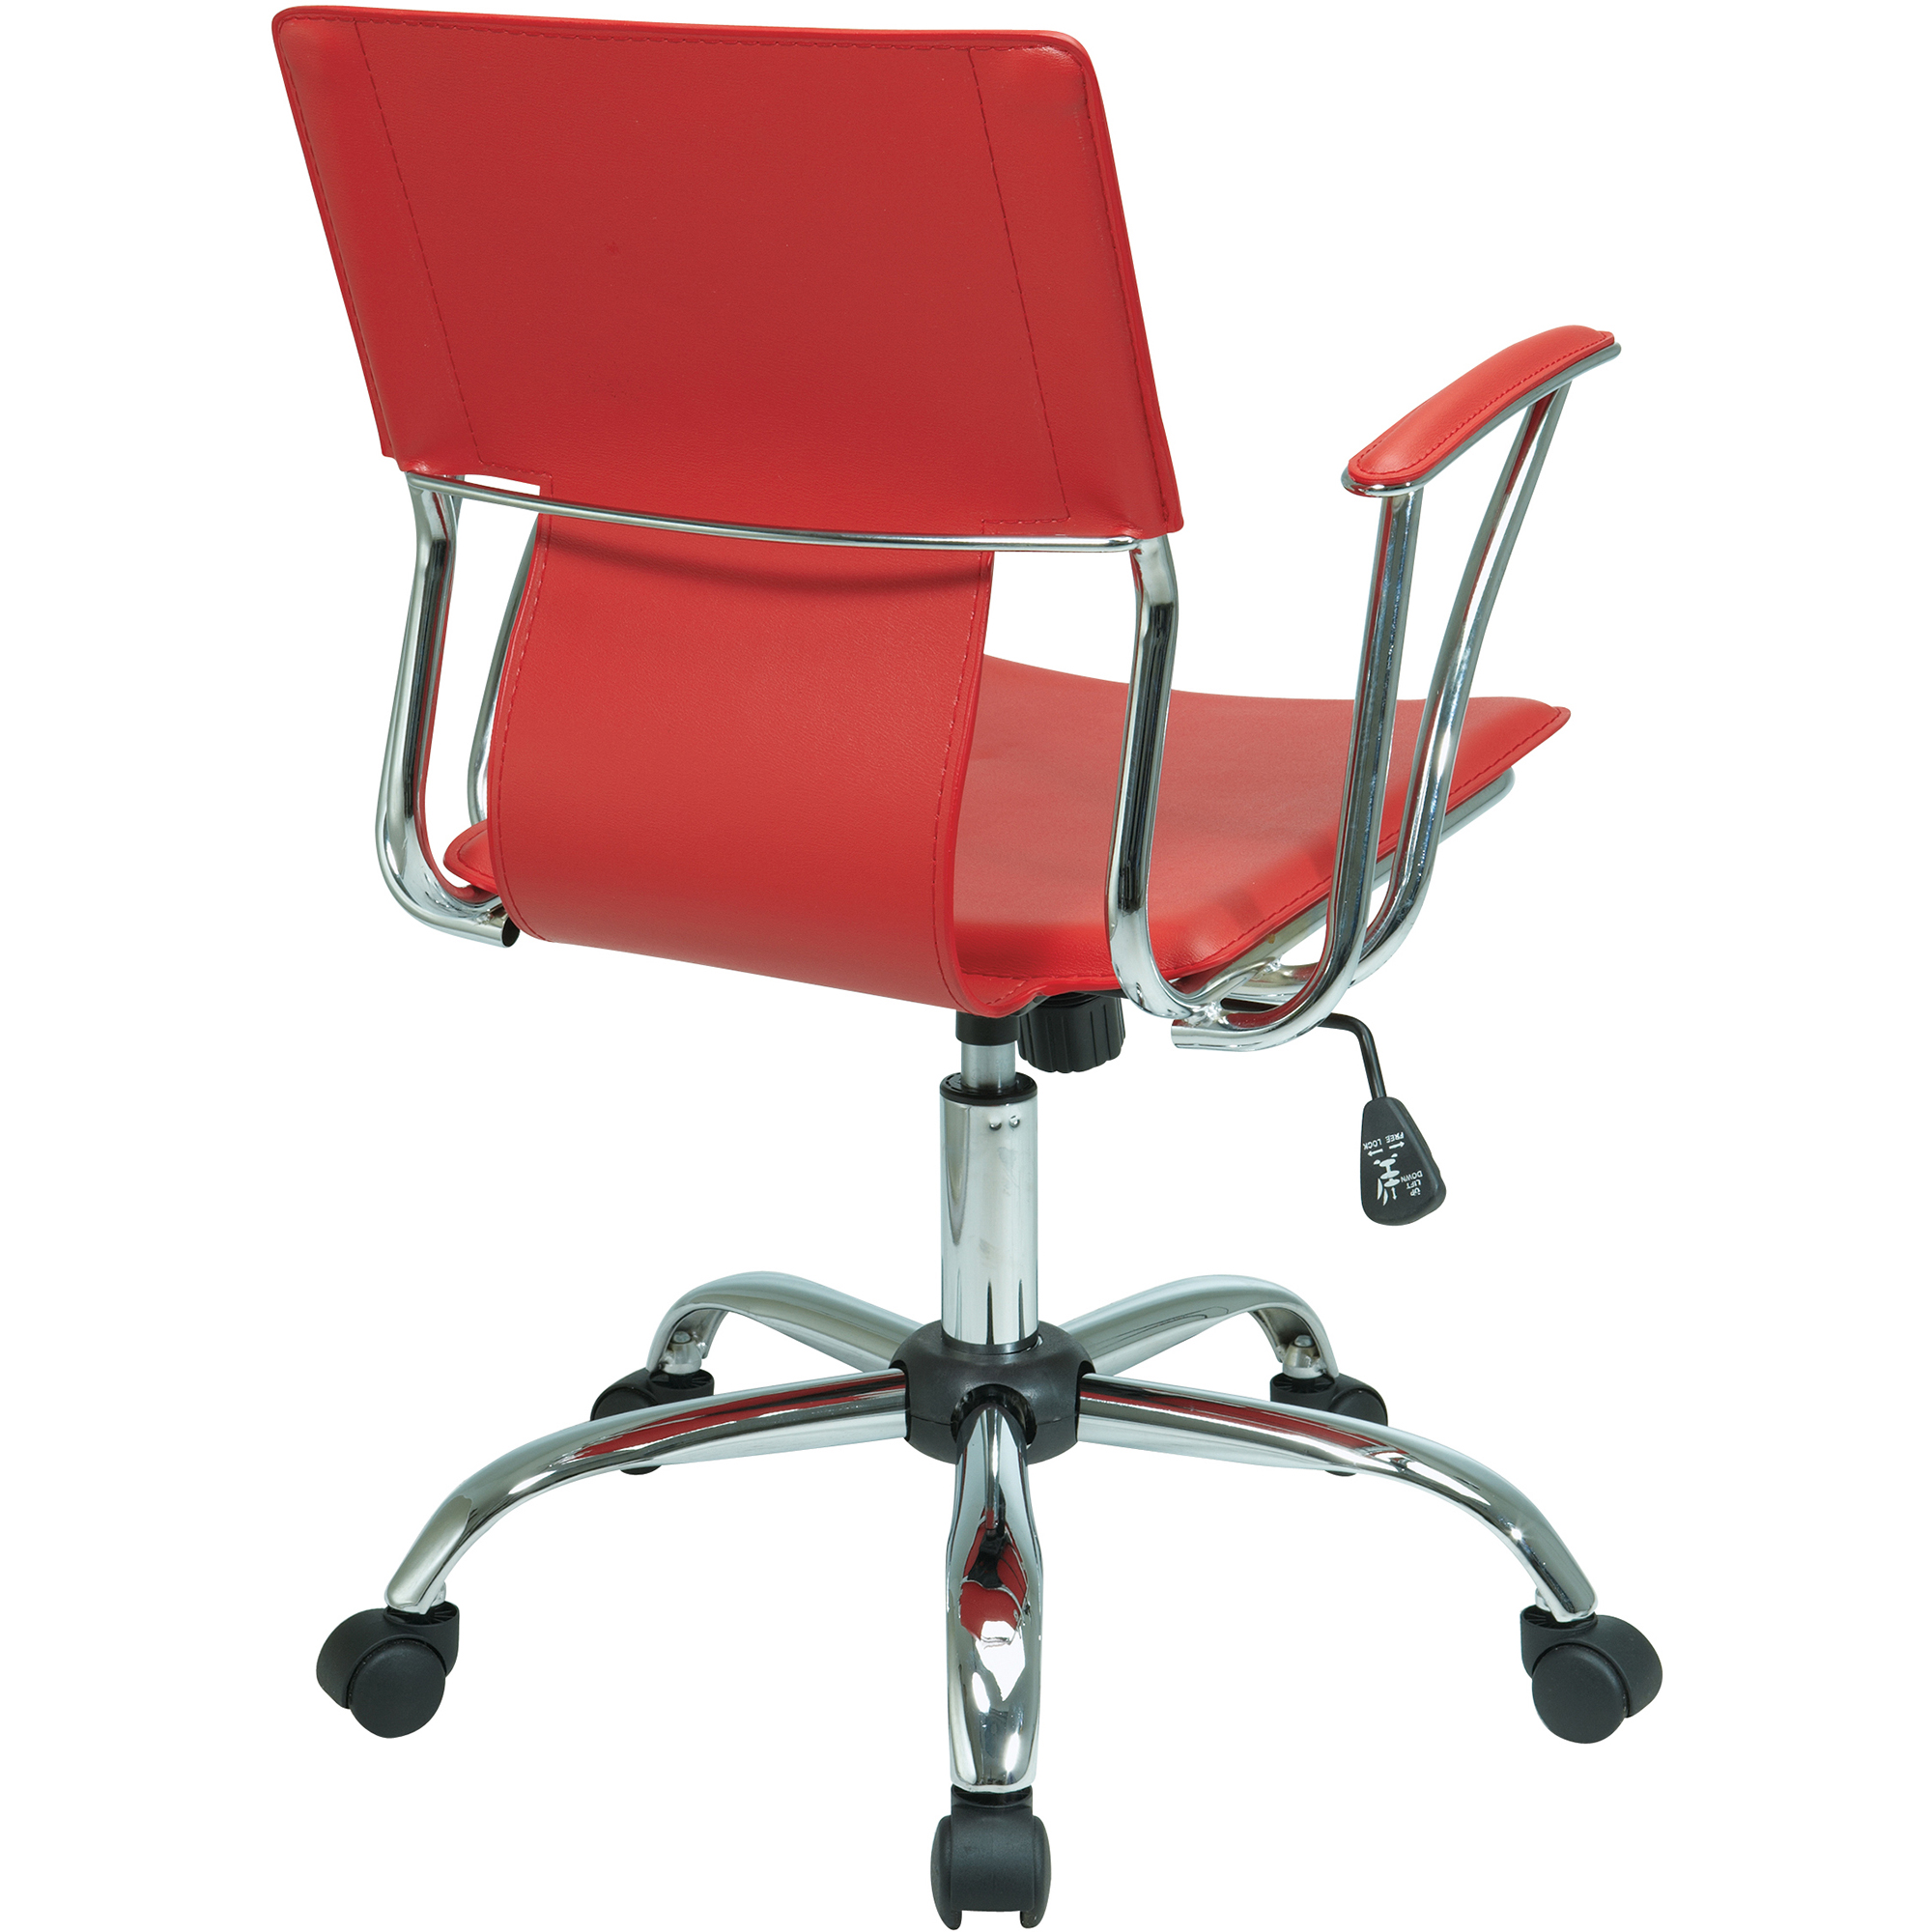 Dorado Office Chair Office Star Products Avenue Six Dorado Office Chair